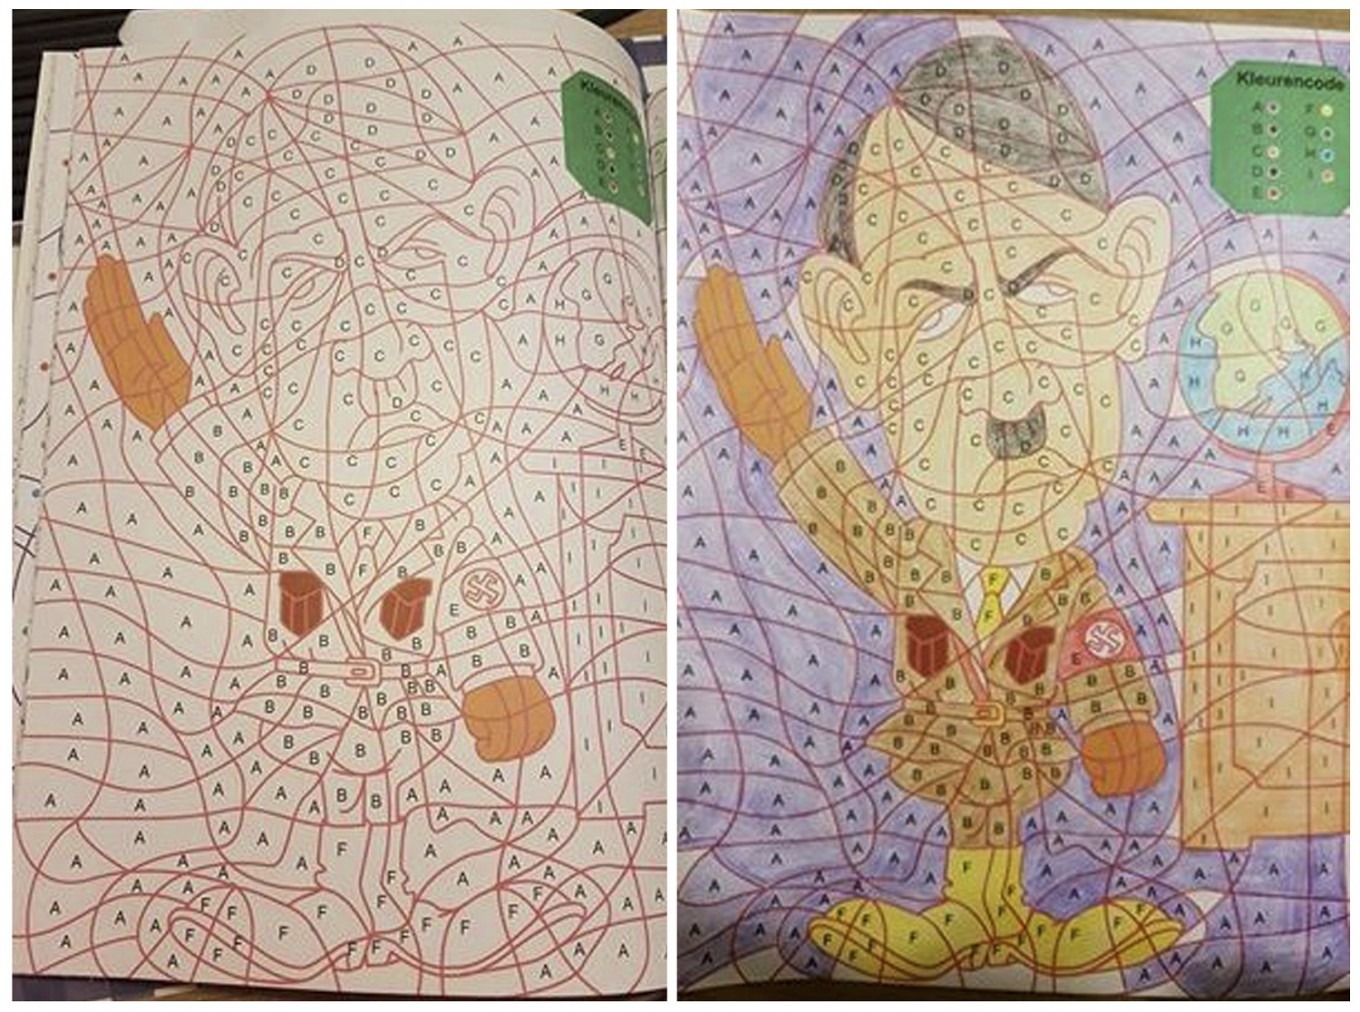 Coloring Book With Hitler Image Pulled From Dutch Stores